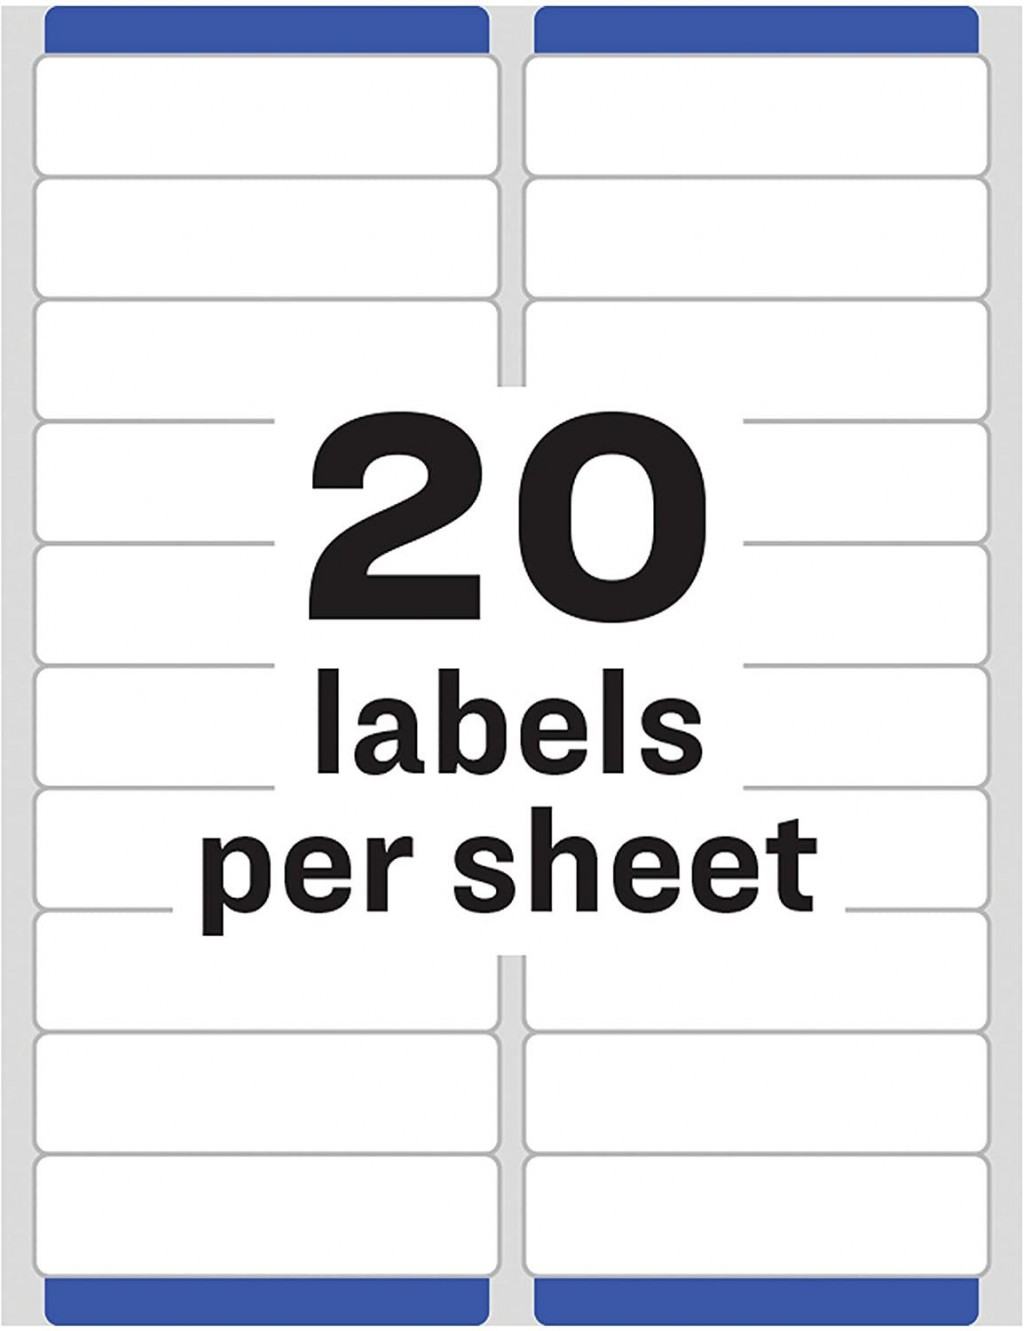 002 Singular Microsoft Word Addres Label Template 20 Per Sheet Example Large